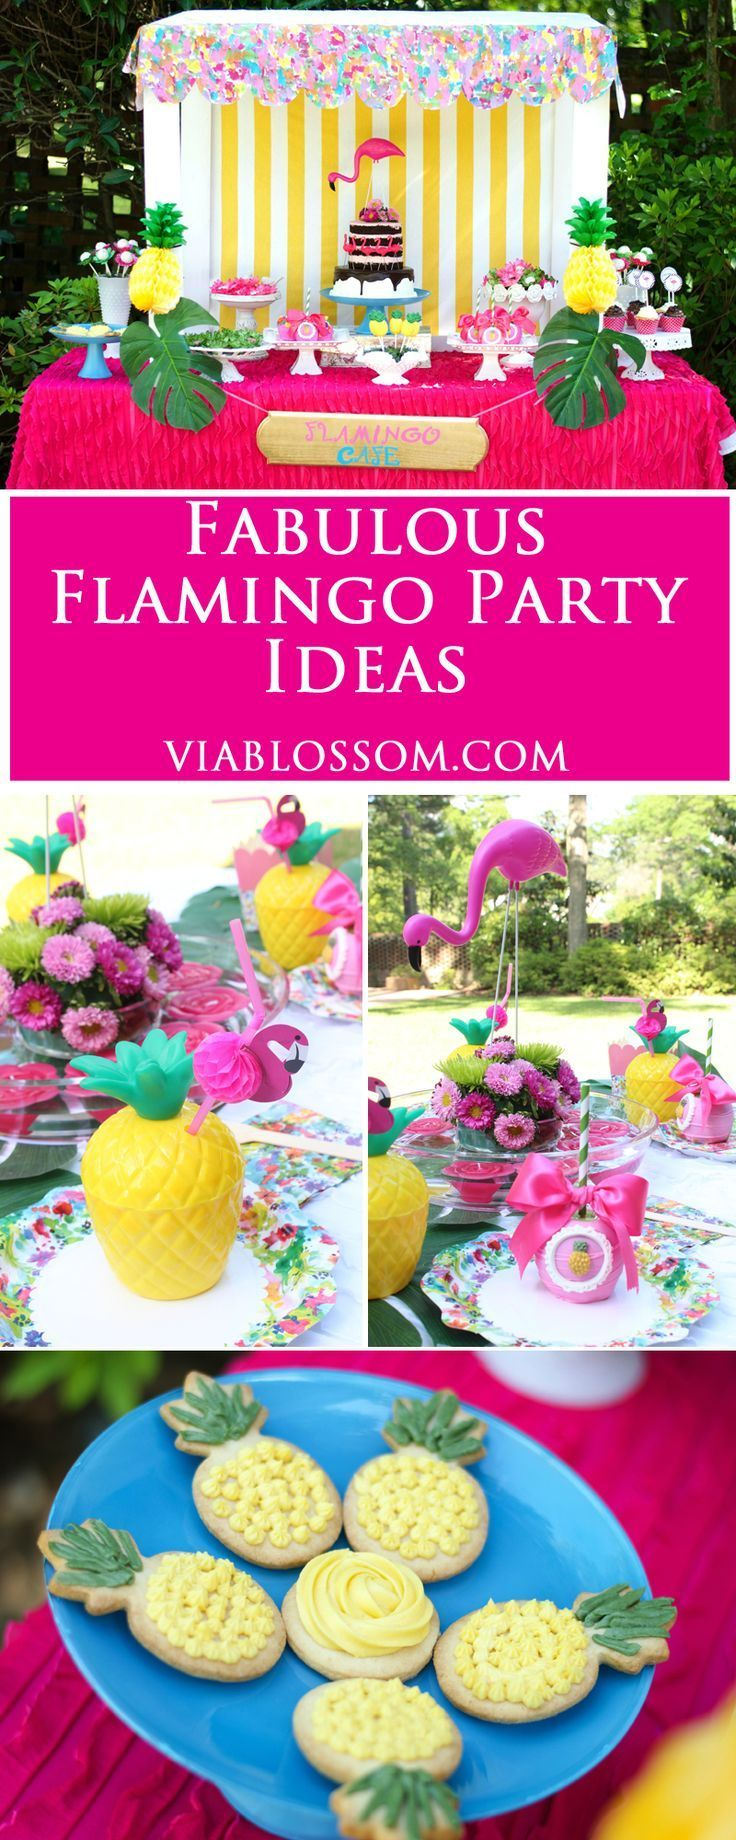 Decoration Stuff For Party 17 Best Ideas About Birthday Party Decorations On Pinterest